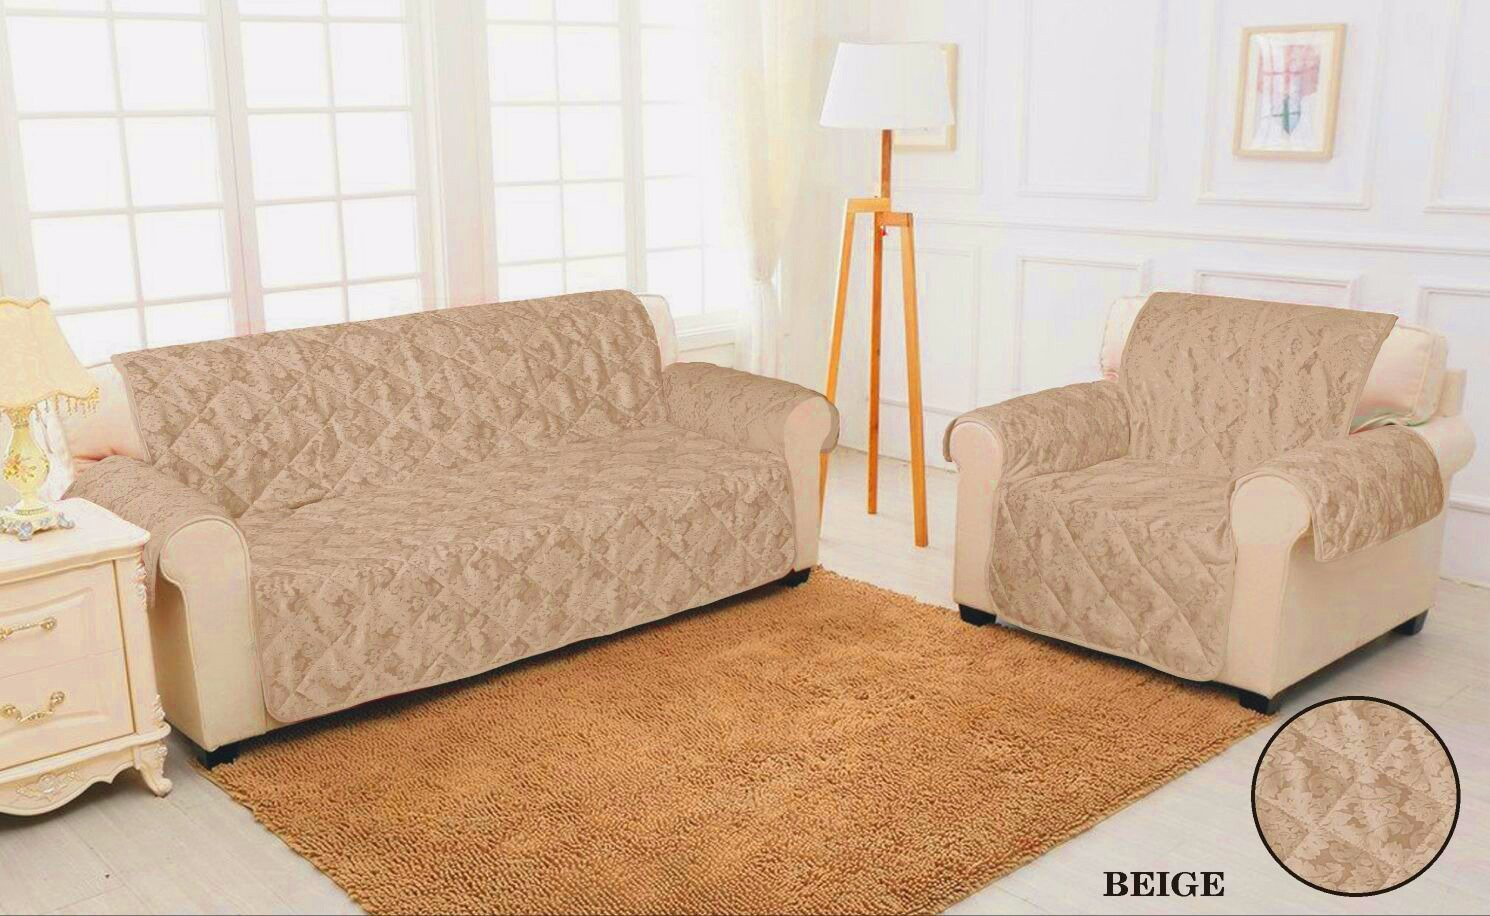 2 SEATER SOFA COVER - BEIGE Quilted Jacquard Pet Protector Sofa Slip Cover HOME COMFORTS